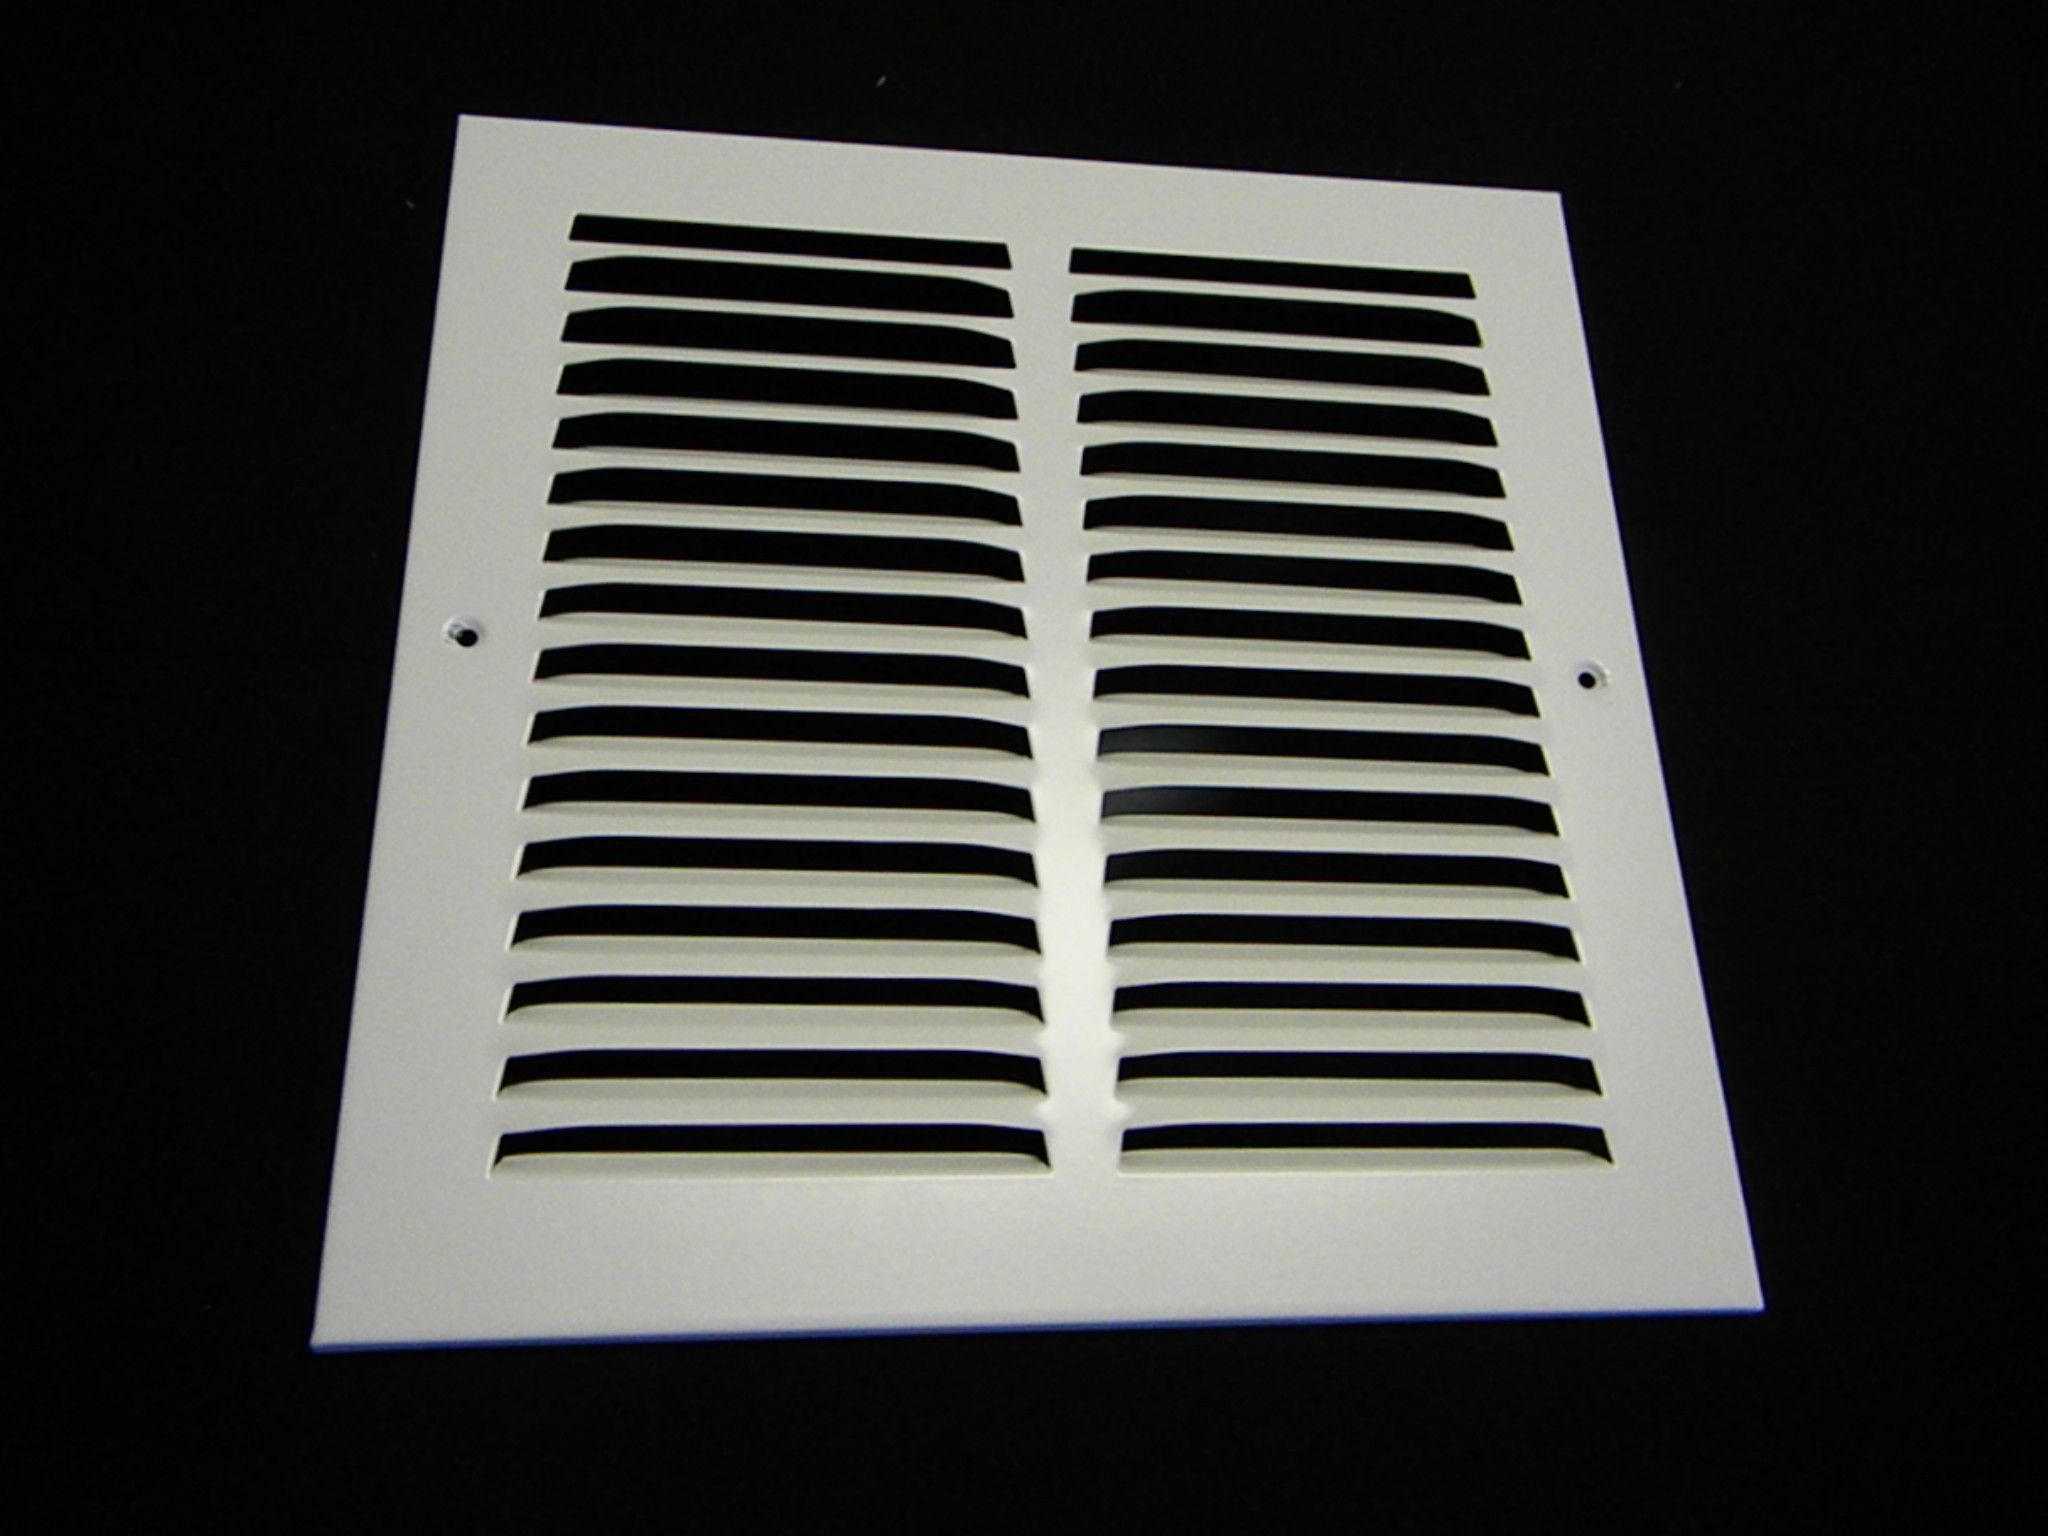 16x16 Return Stamped Grille